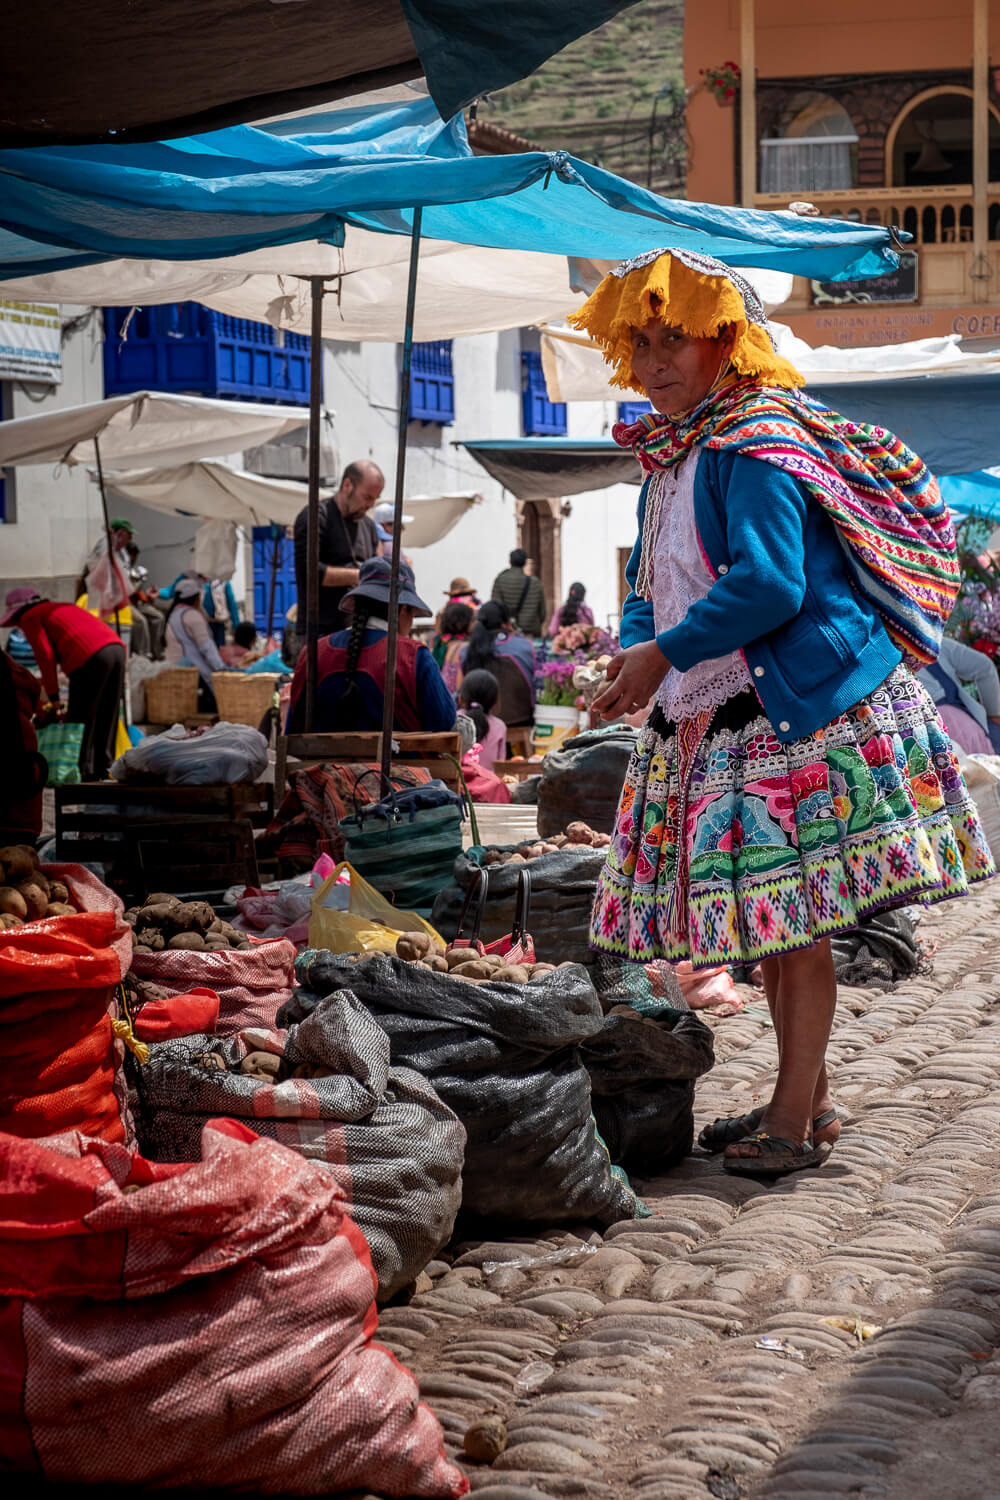 """Woman sells potatoes at the Pisac Market, Cusco. Travel photography and guide by © Natasha Lequepeys for """"And Then I Met Yoko"""". #cusco #peru #photoblog #travelblog #peruitinerary #cuscoitinerary"""